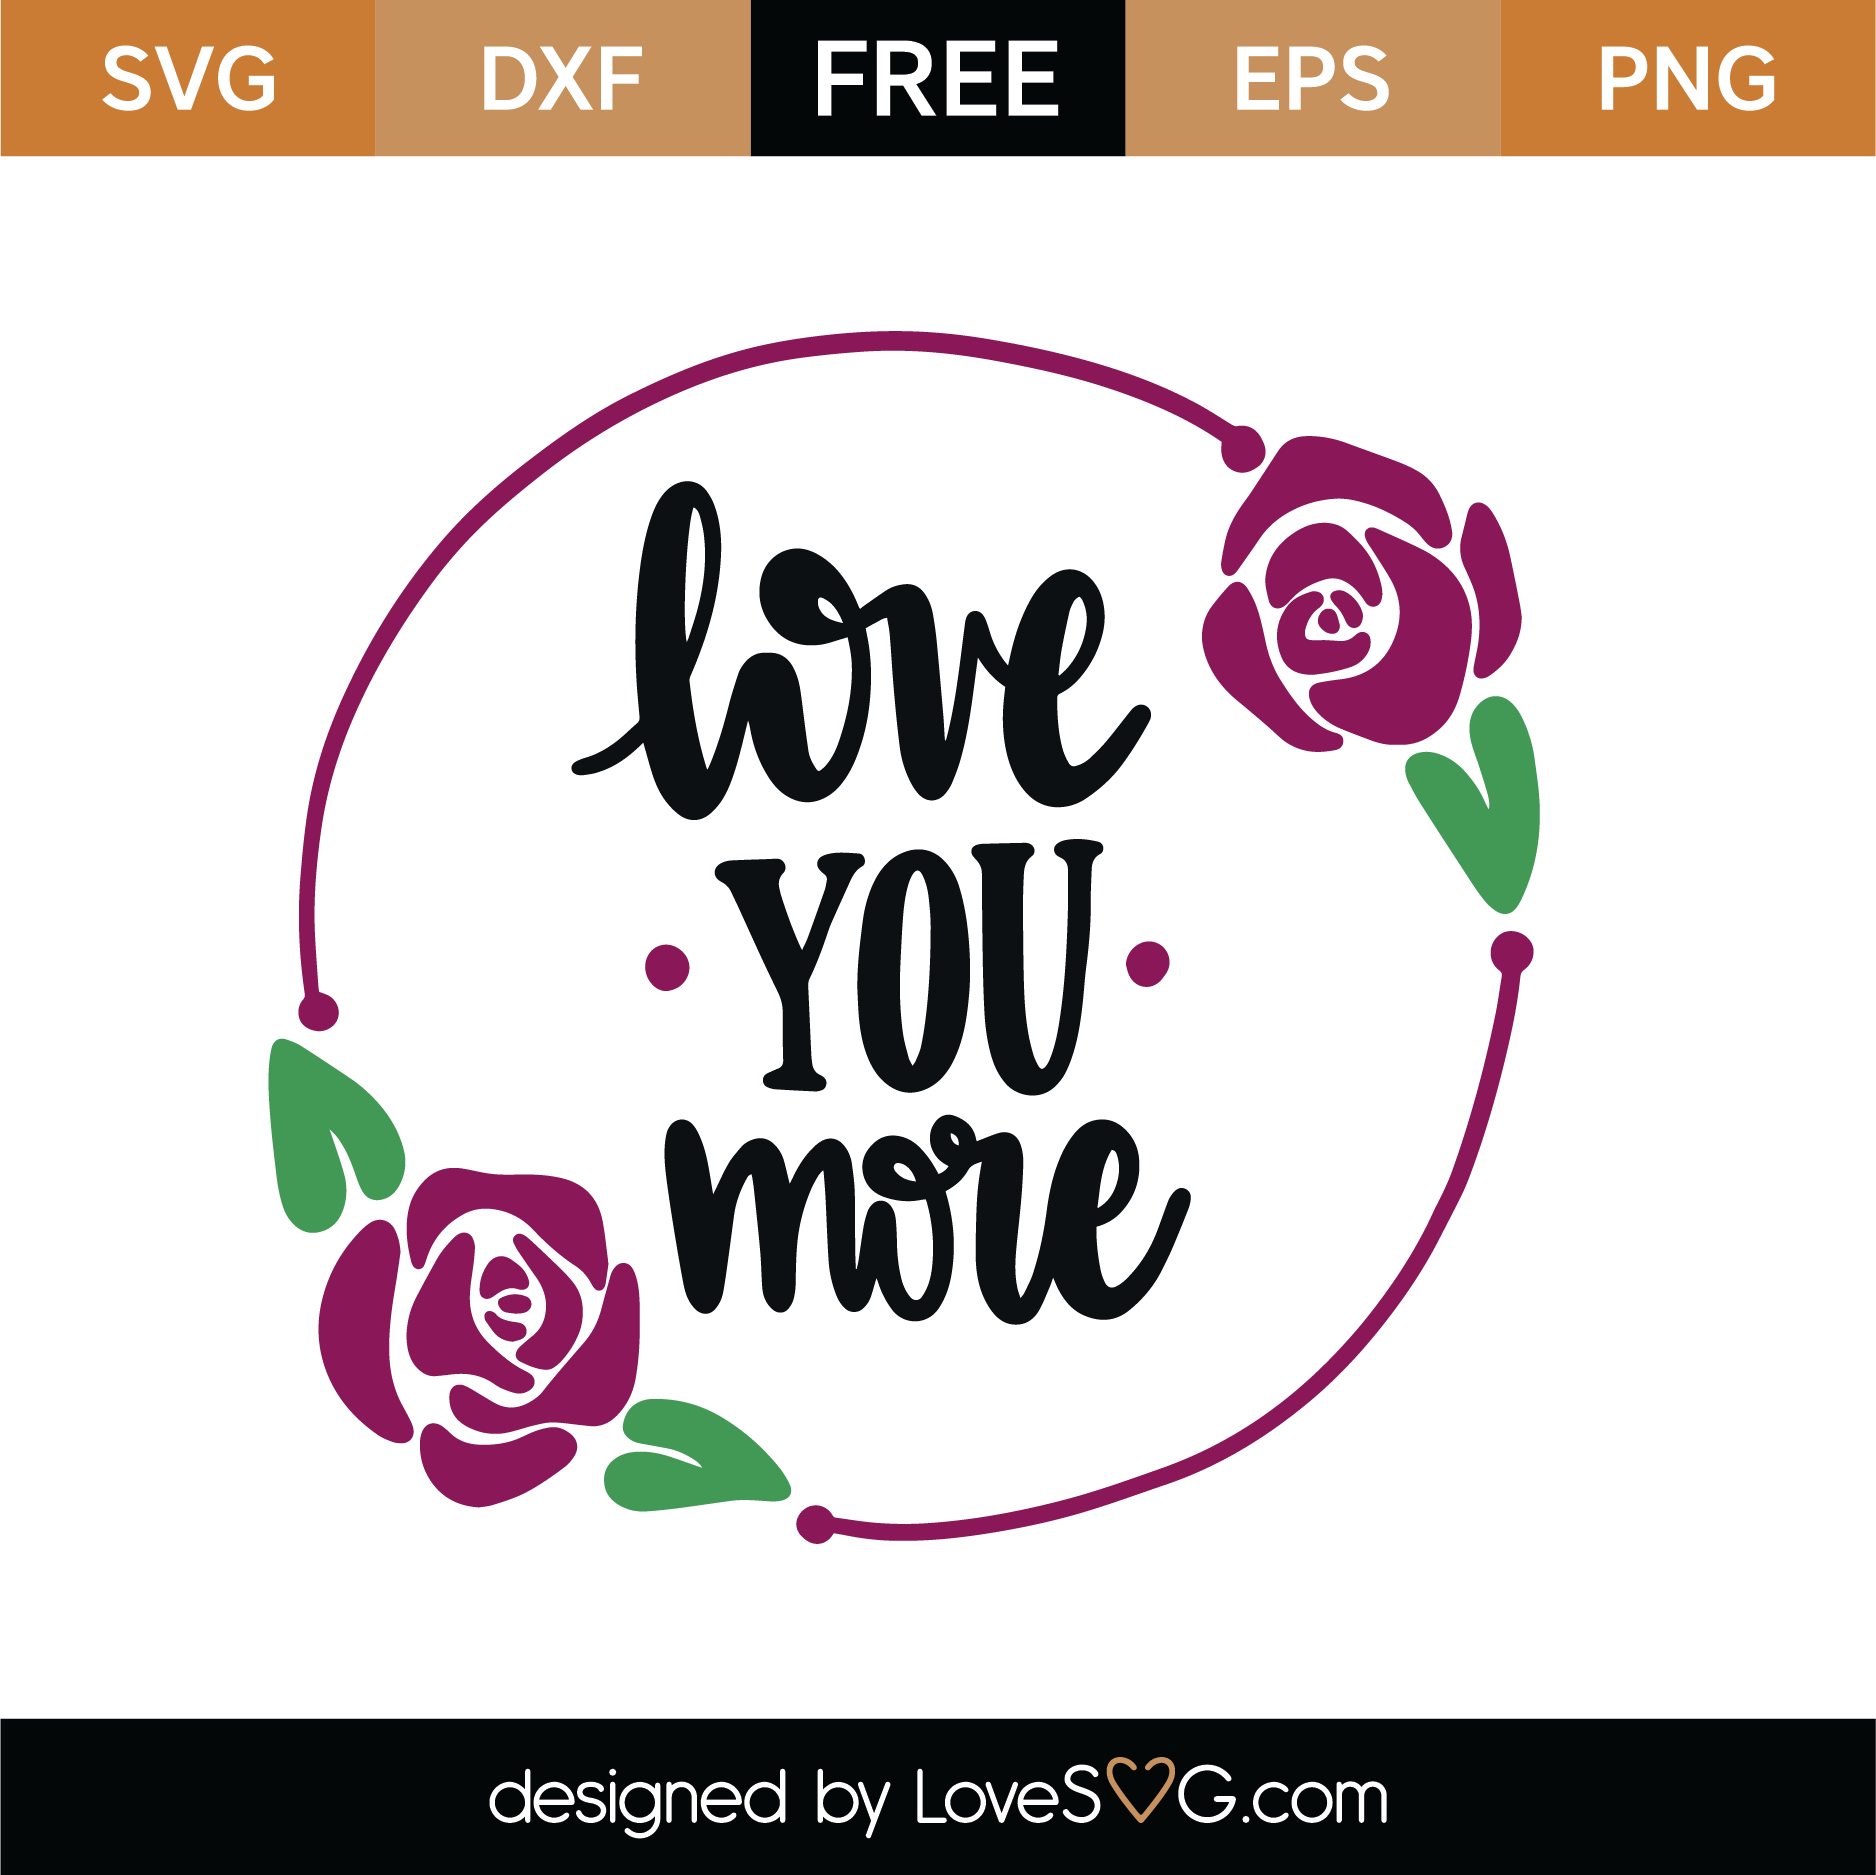 Download Free Love You More SVG Cut File | Lovesvg.com